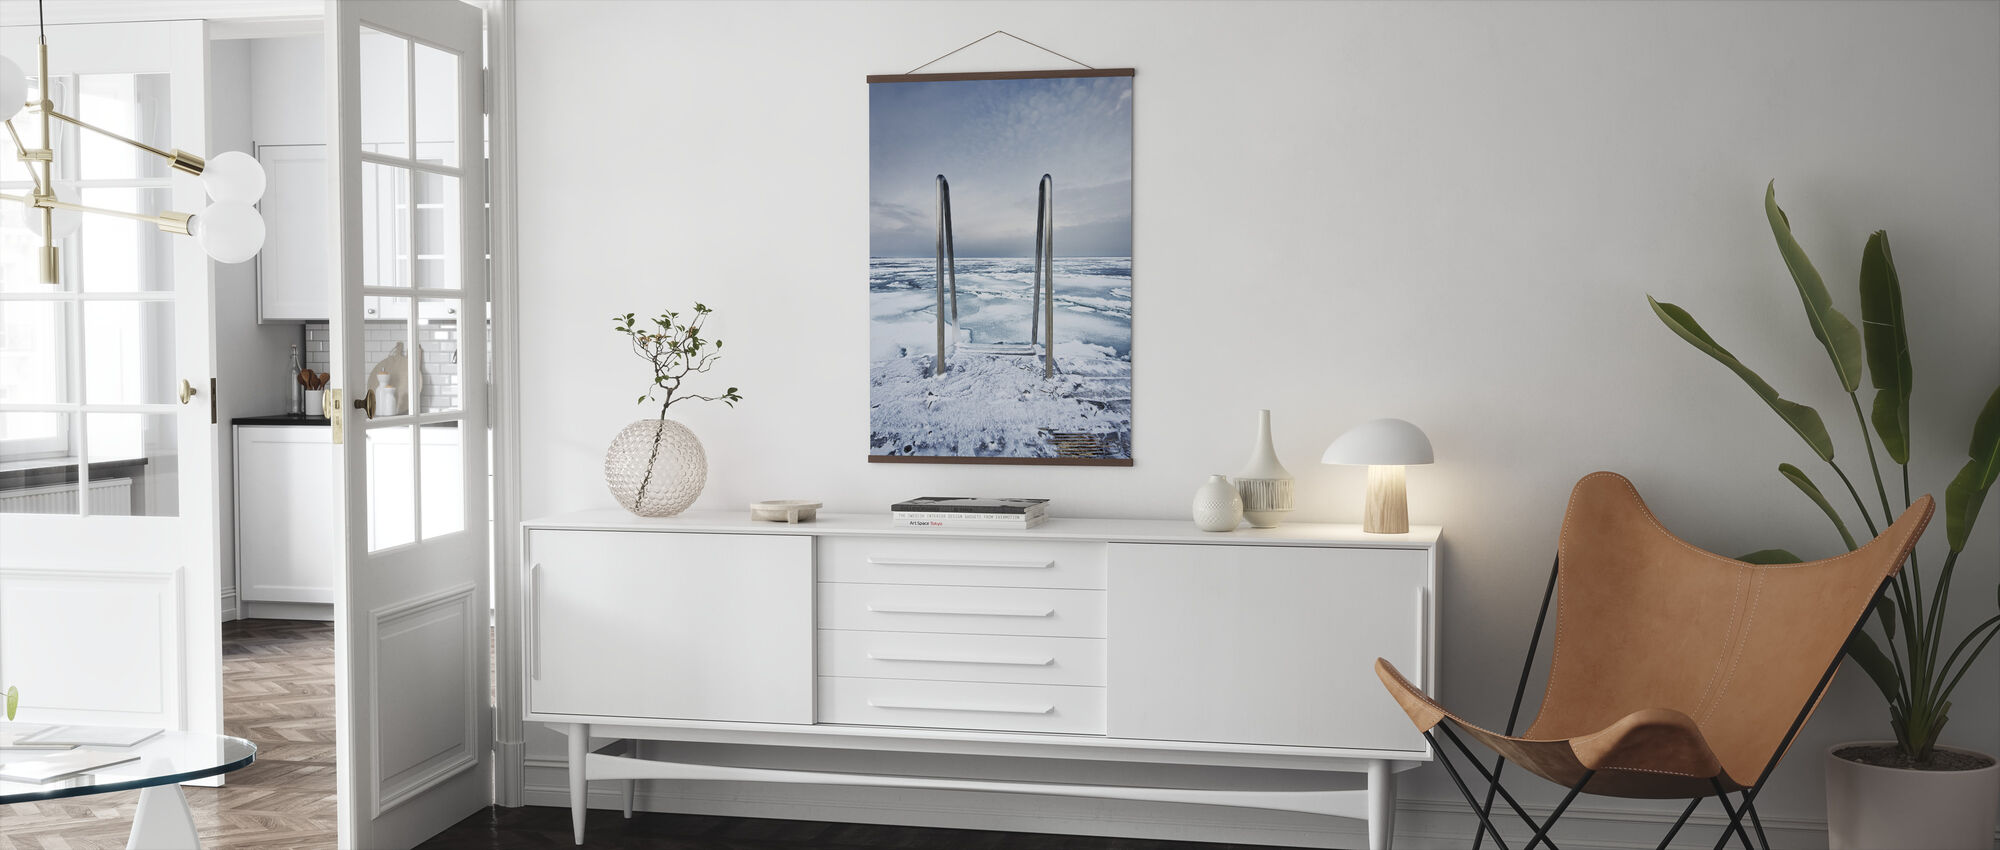 Icy Ladder and Horizon - Poster - Living Room